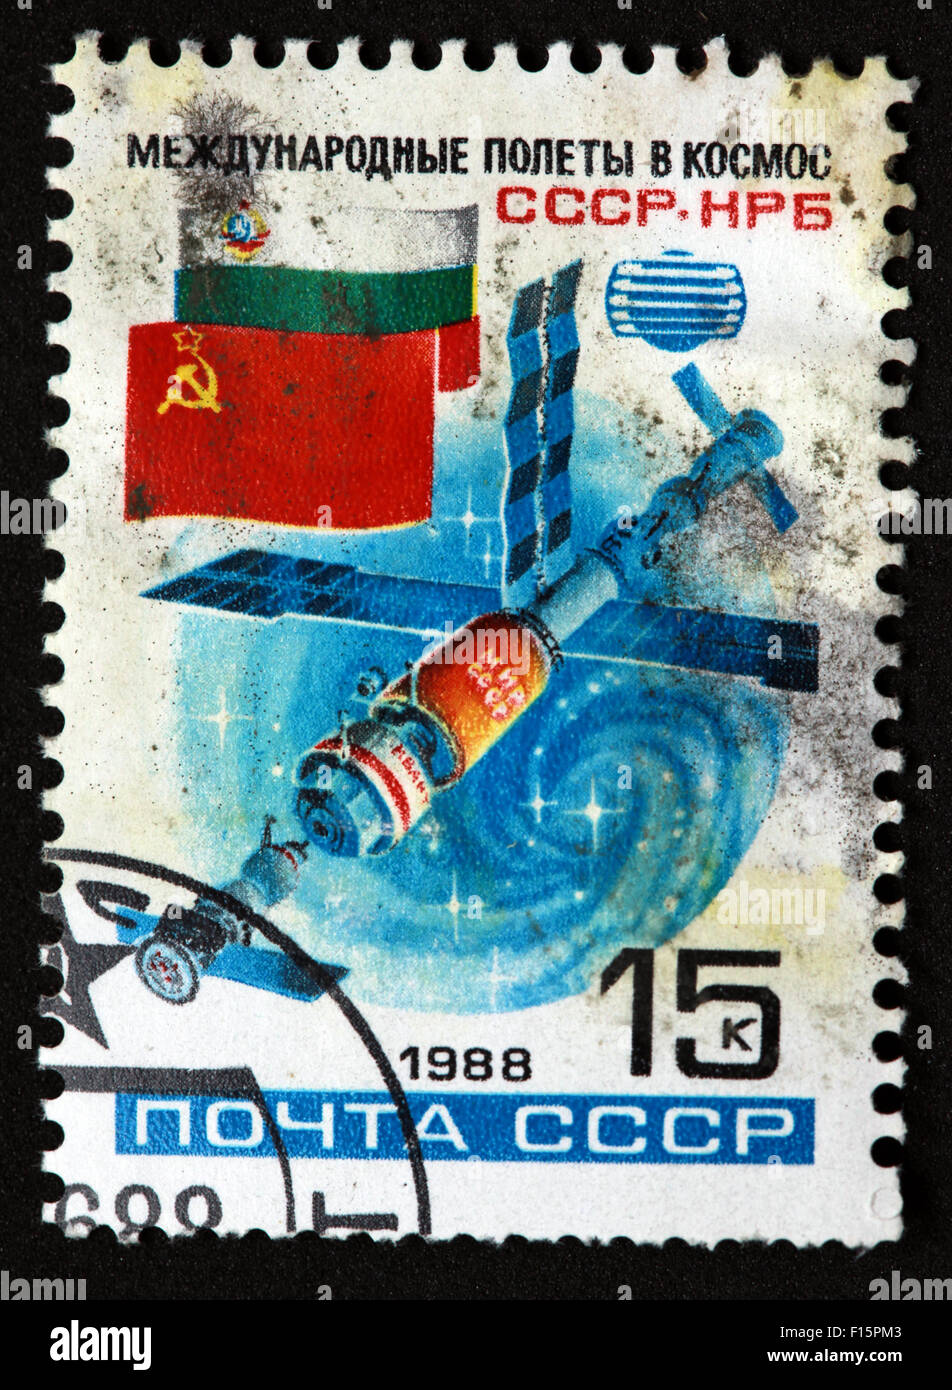 CCCP USSR HP5 space vehicle flags stamp 1988 stamp - Stock Image